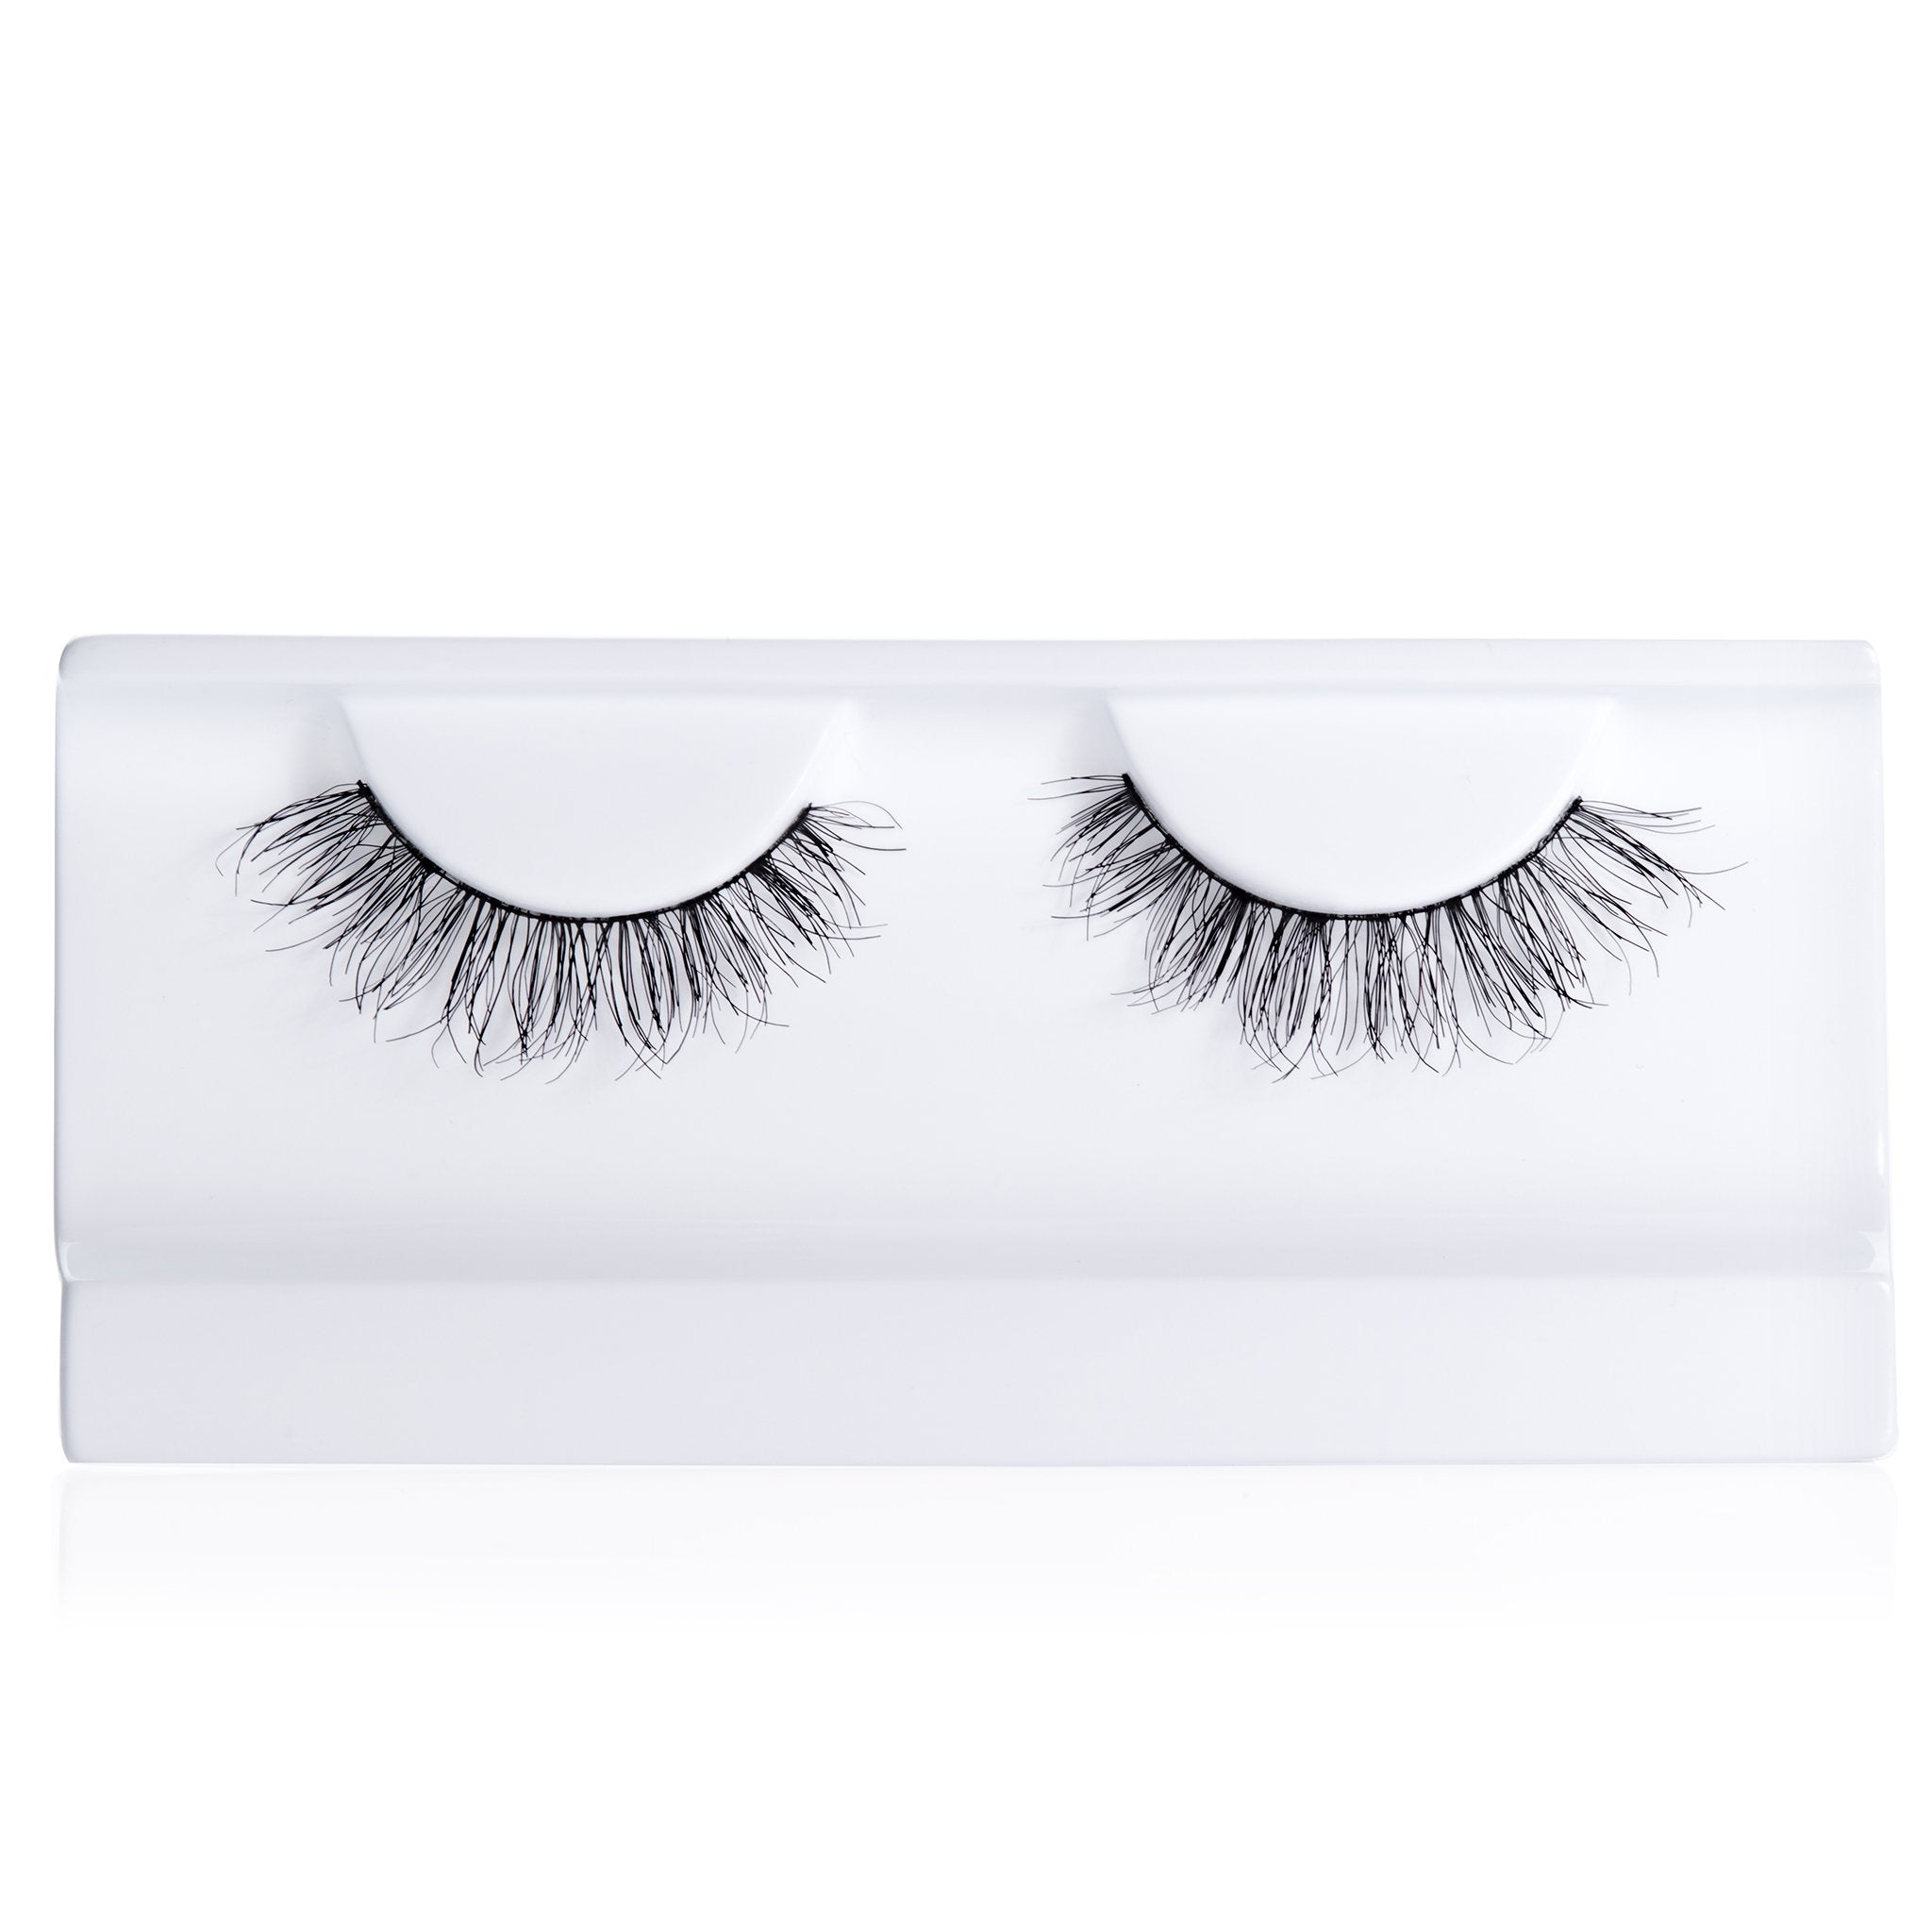 Wispy False Lashes